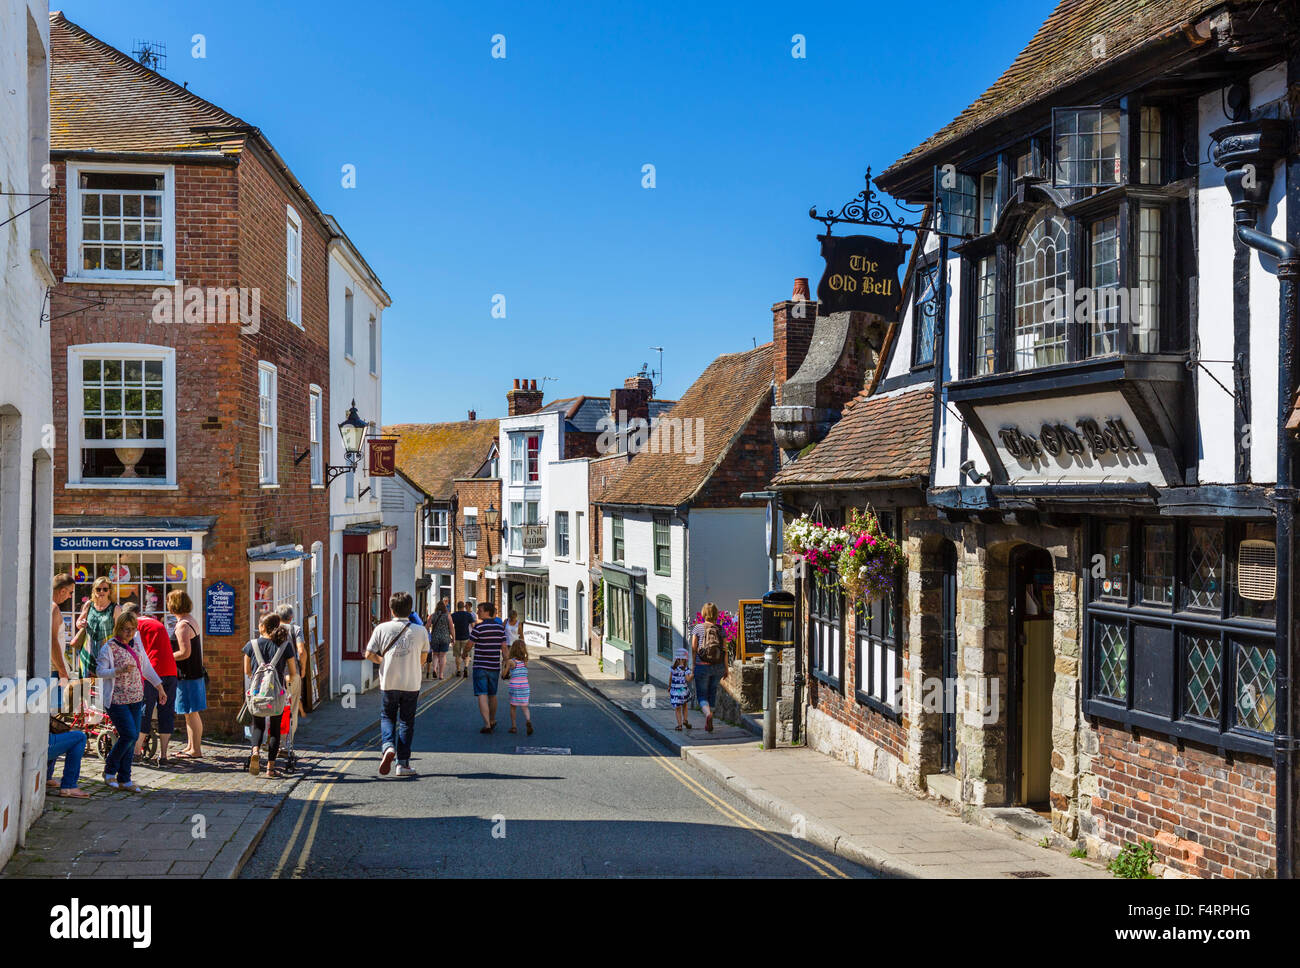 High Street avec l'ancien pub de Bell à droite, Rye, East Sussex, England, UK Photo Stock